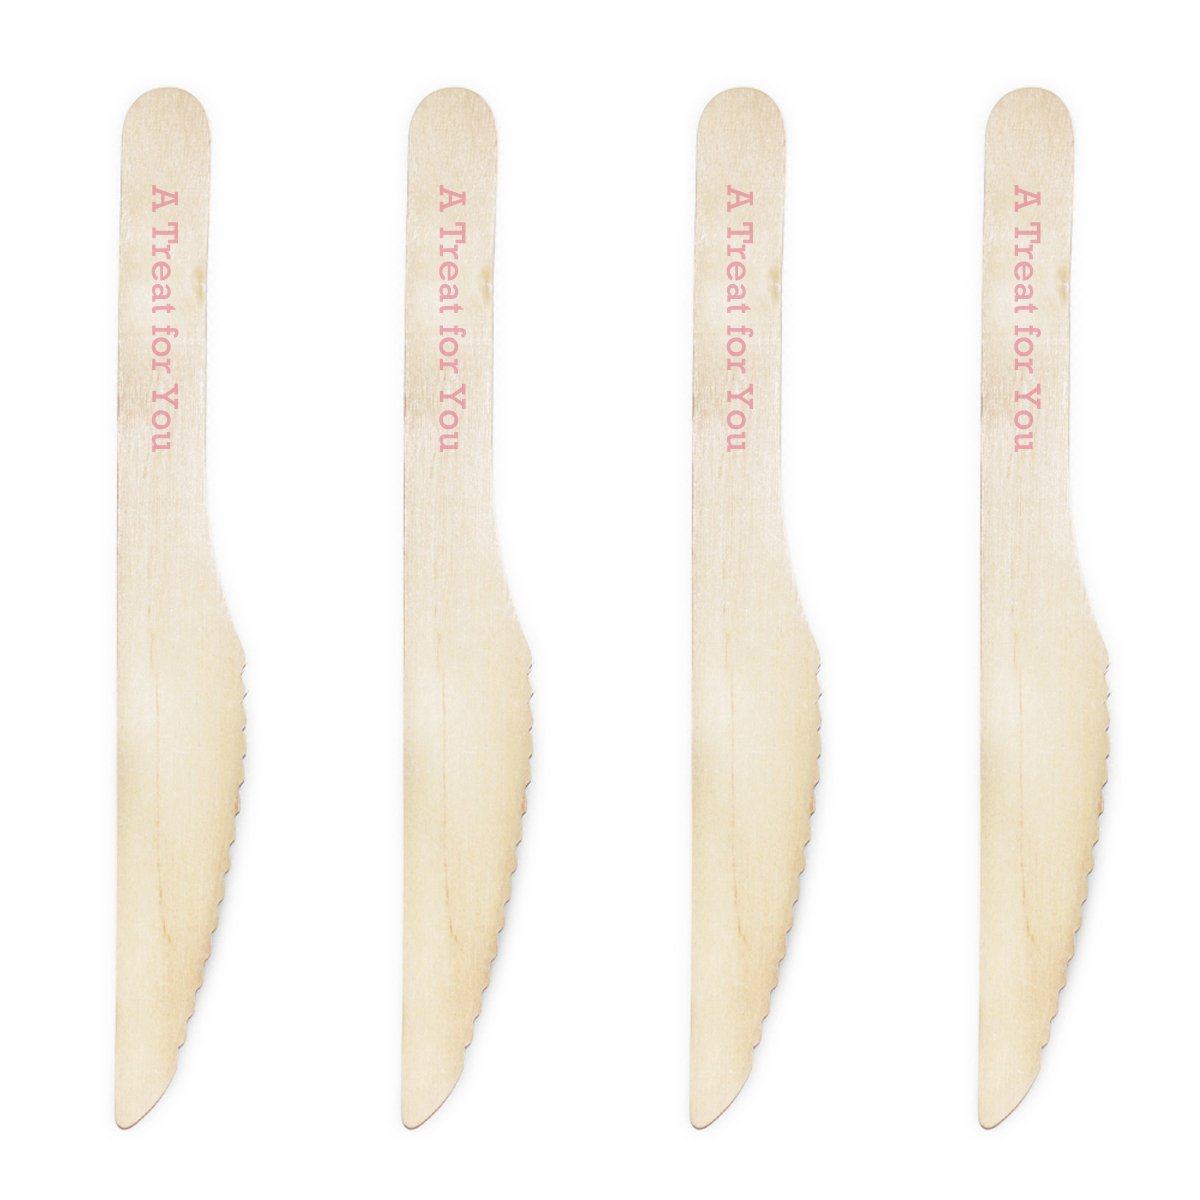 Dress My Cupcake Natural Wood Candy 200-Pack Buffet Knives DIY Kit, A Treat for You, Pink